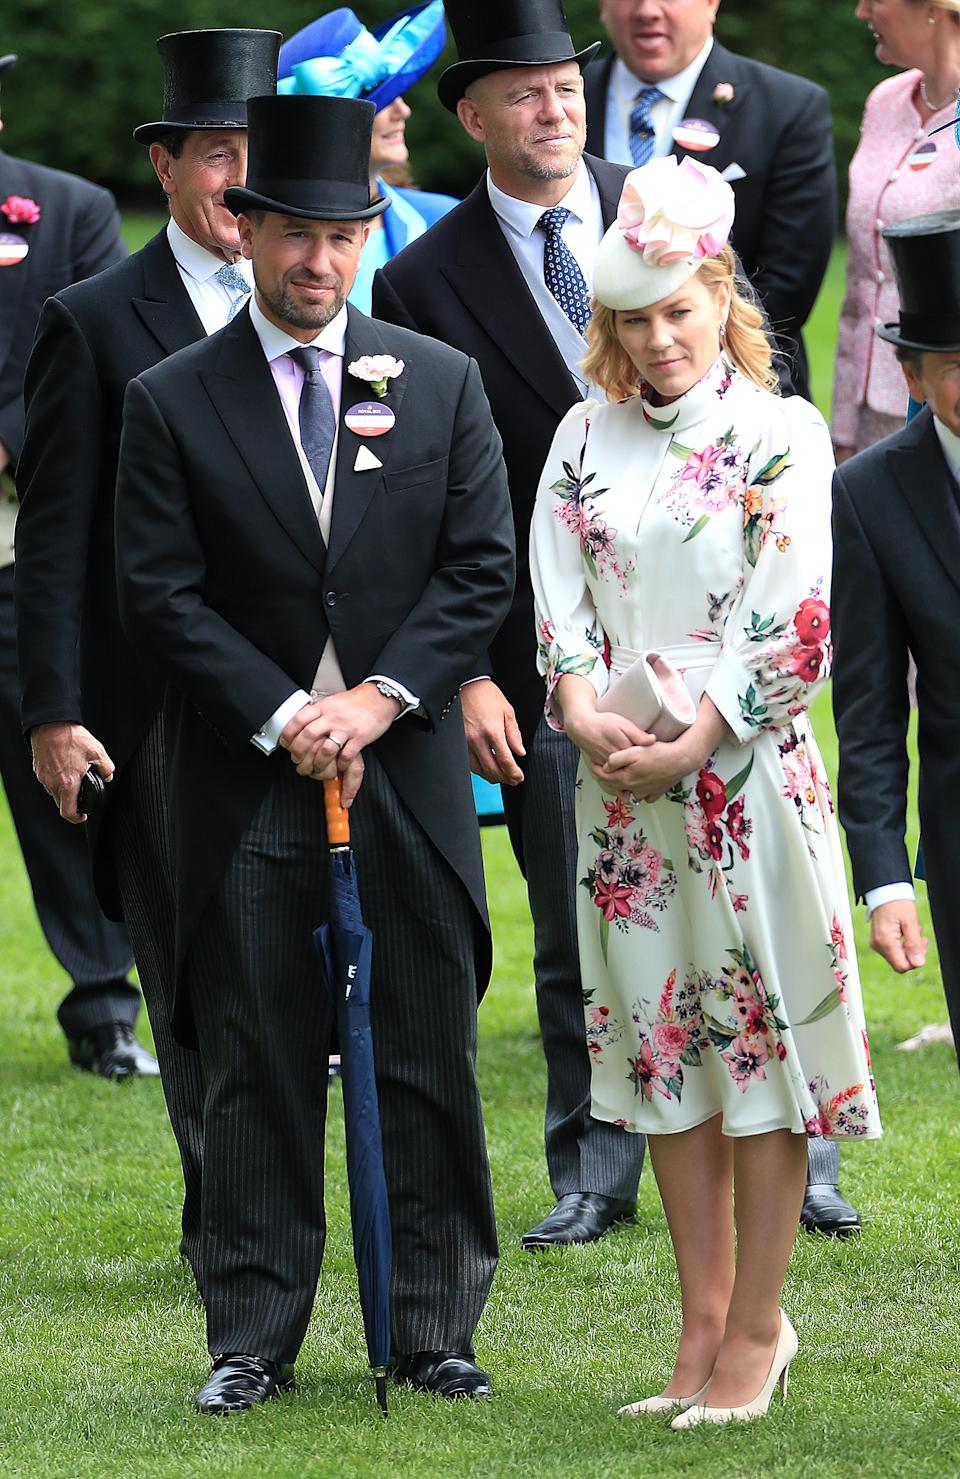 """Autumn wore a £795 ivory floral dress with keyhole detailing by <a href=""""https://fave.co/2Y4JLom"""" rel=""""nofollow noopener"""" target=""""_blank"""" data-ylk=""""slk:Claire Mischevani"""" class=""""link rapid-noclick-resp"""">Claire Mischevani</a> with a hat by Bee Smith. <em>[Photo: PA]</em>"""